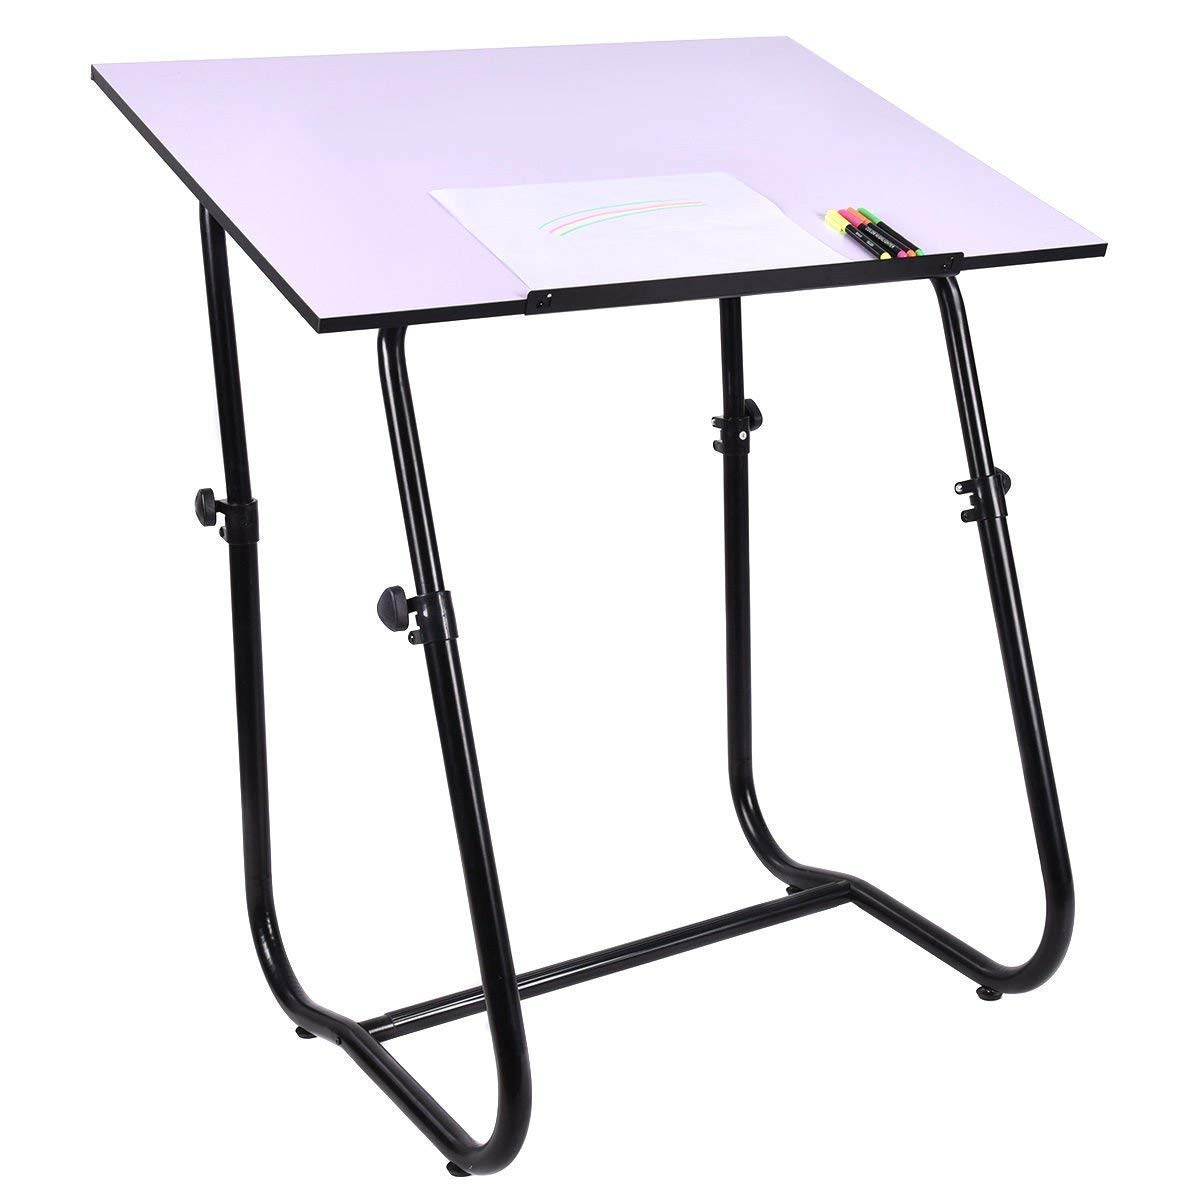 Tangkula Drawing Desk Height Adjustable Indoor Outdoor Home Office Workstation Tiltable Compact Portable Drafting Table